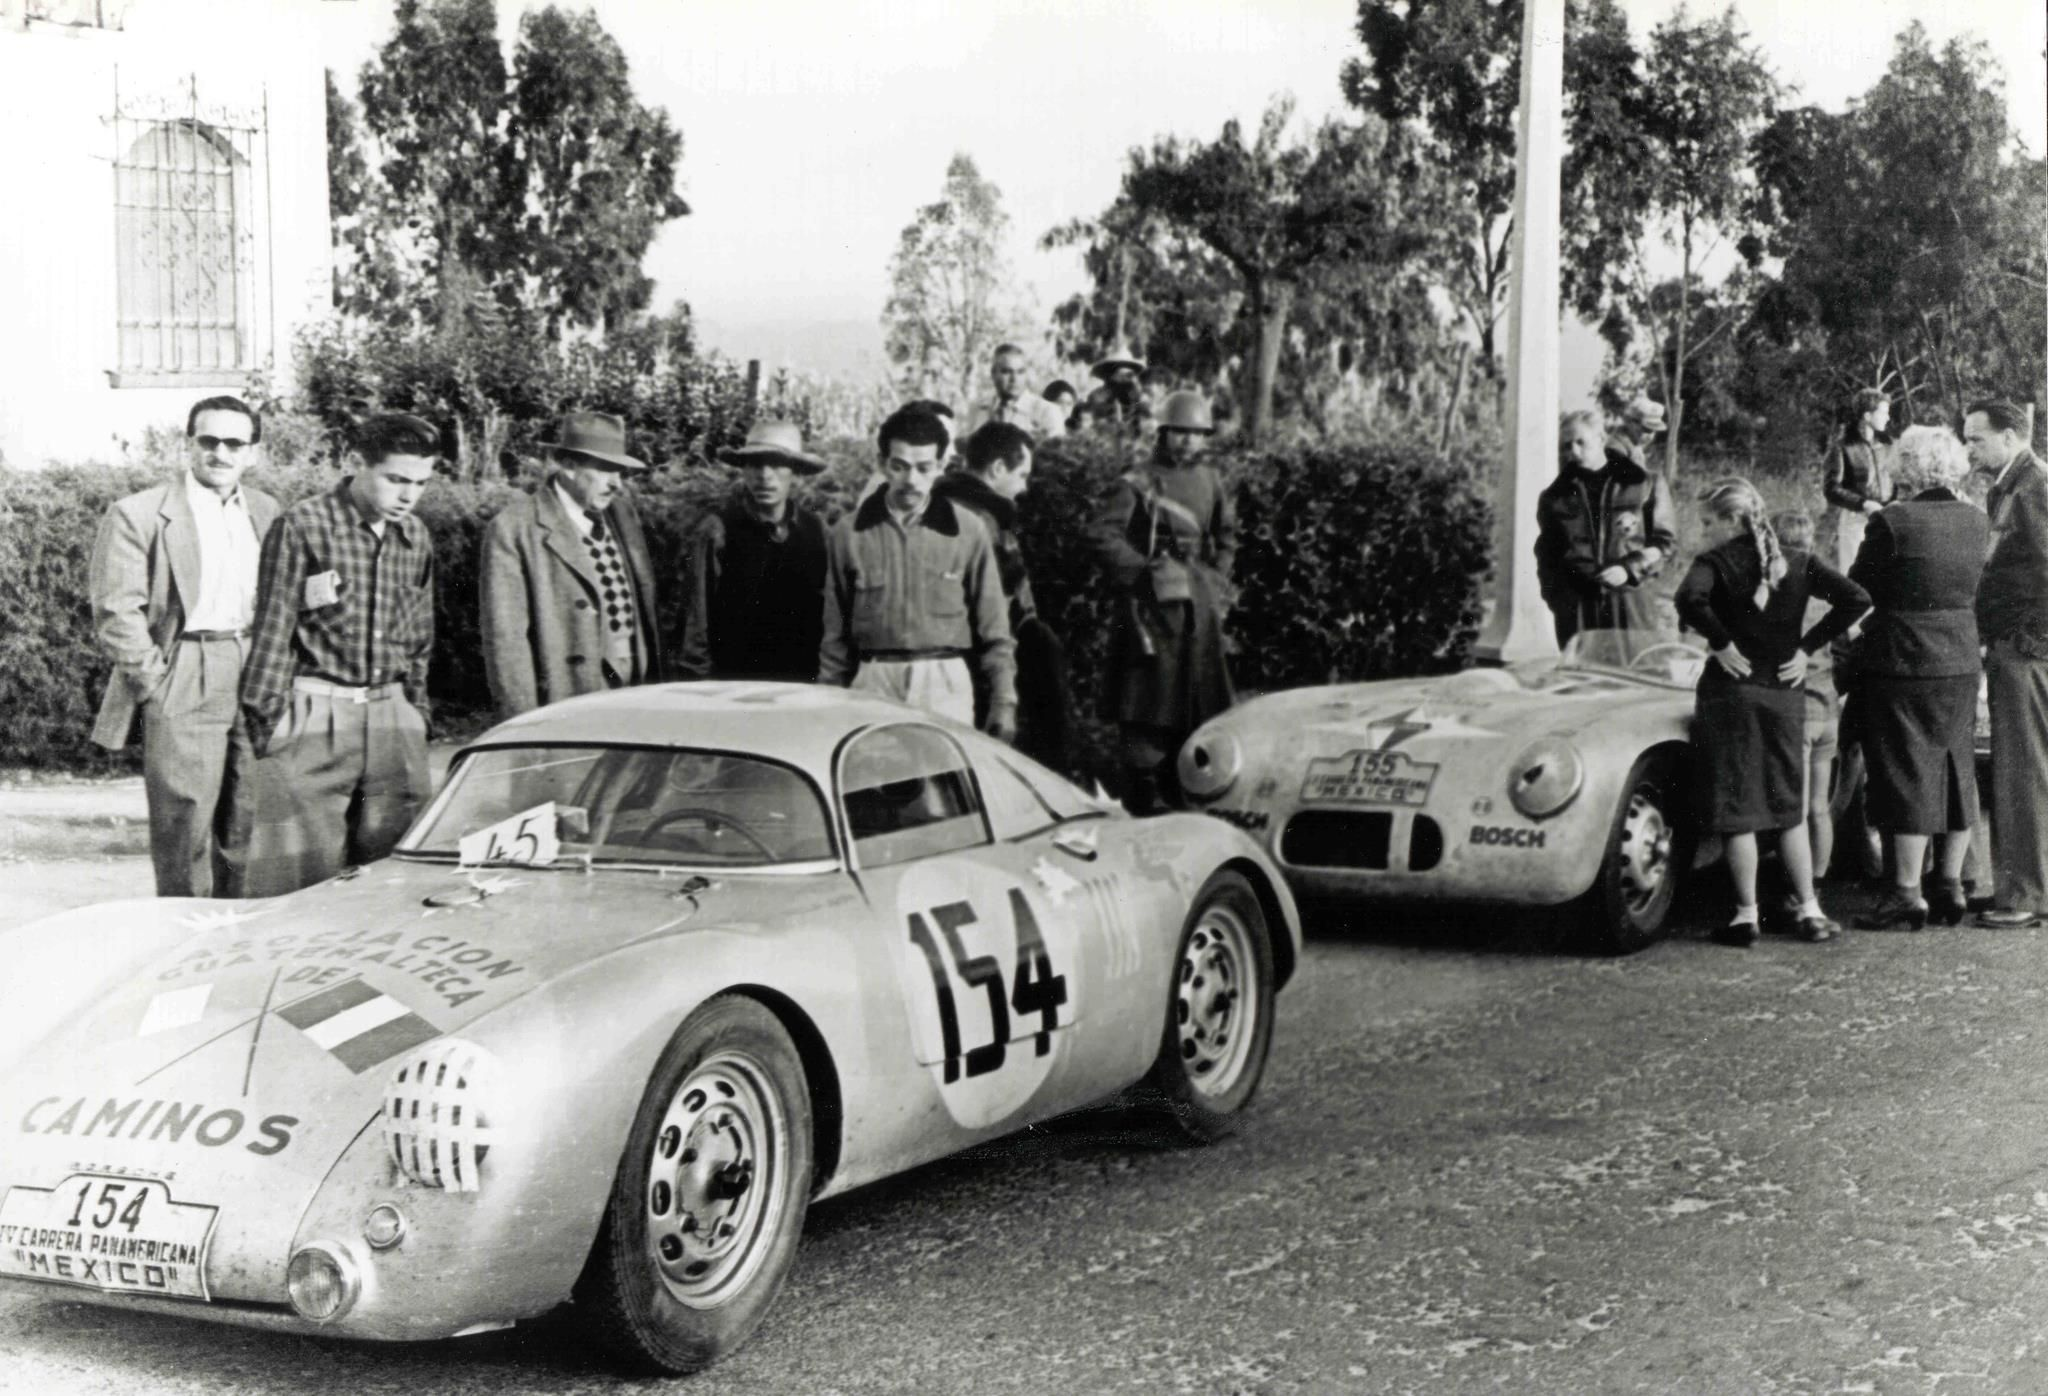 Porsche 550 Coupé and a Borgward Hansa 1500 RS at the start of the 1953 rally